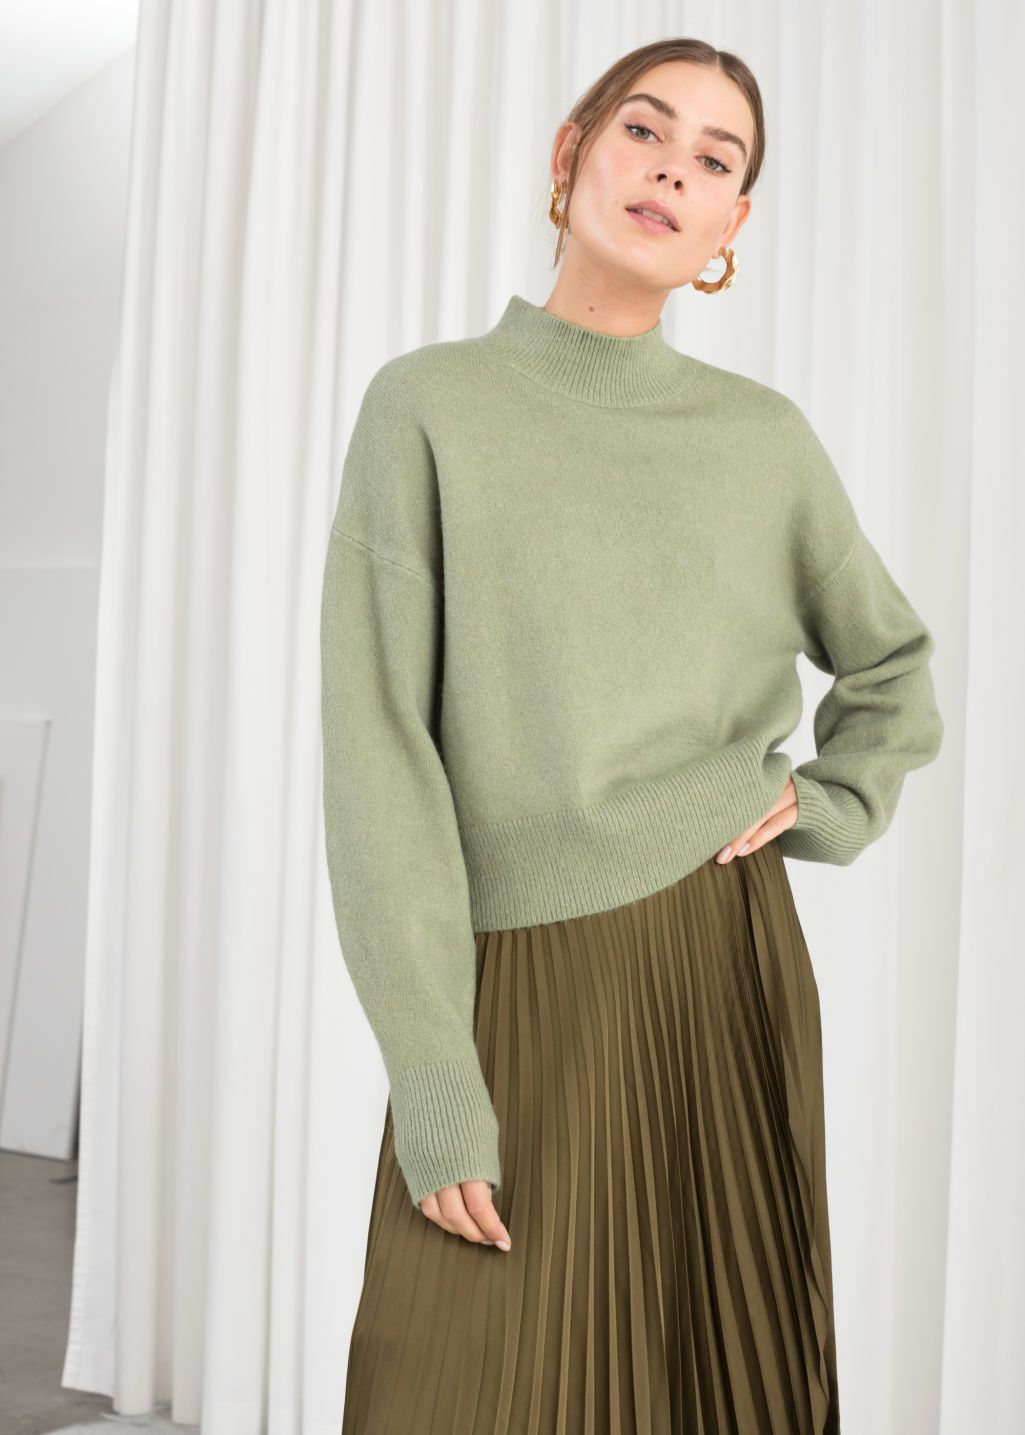 Mock Neck Sweater | Mock neck sweater, Pullovers outfit